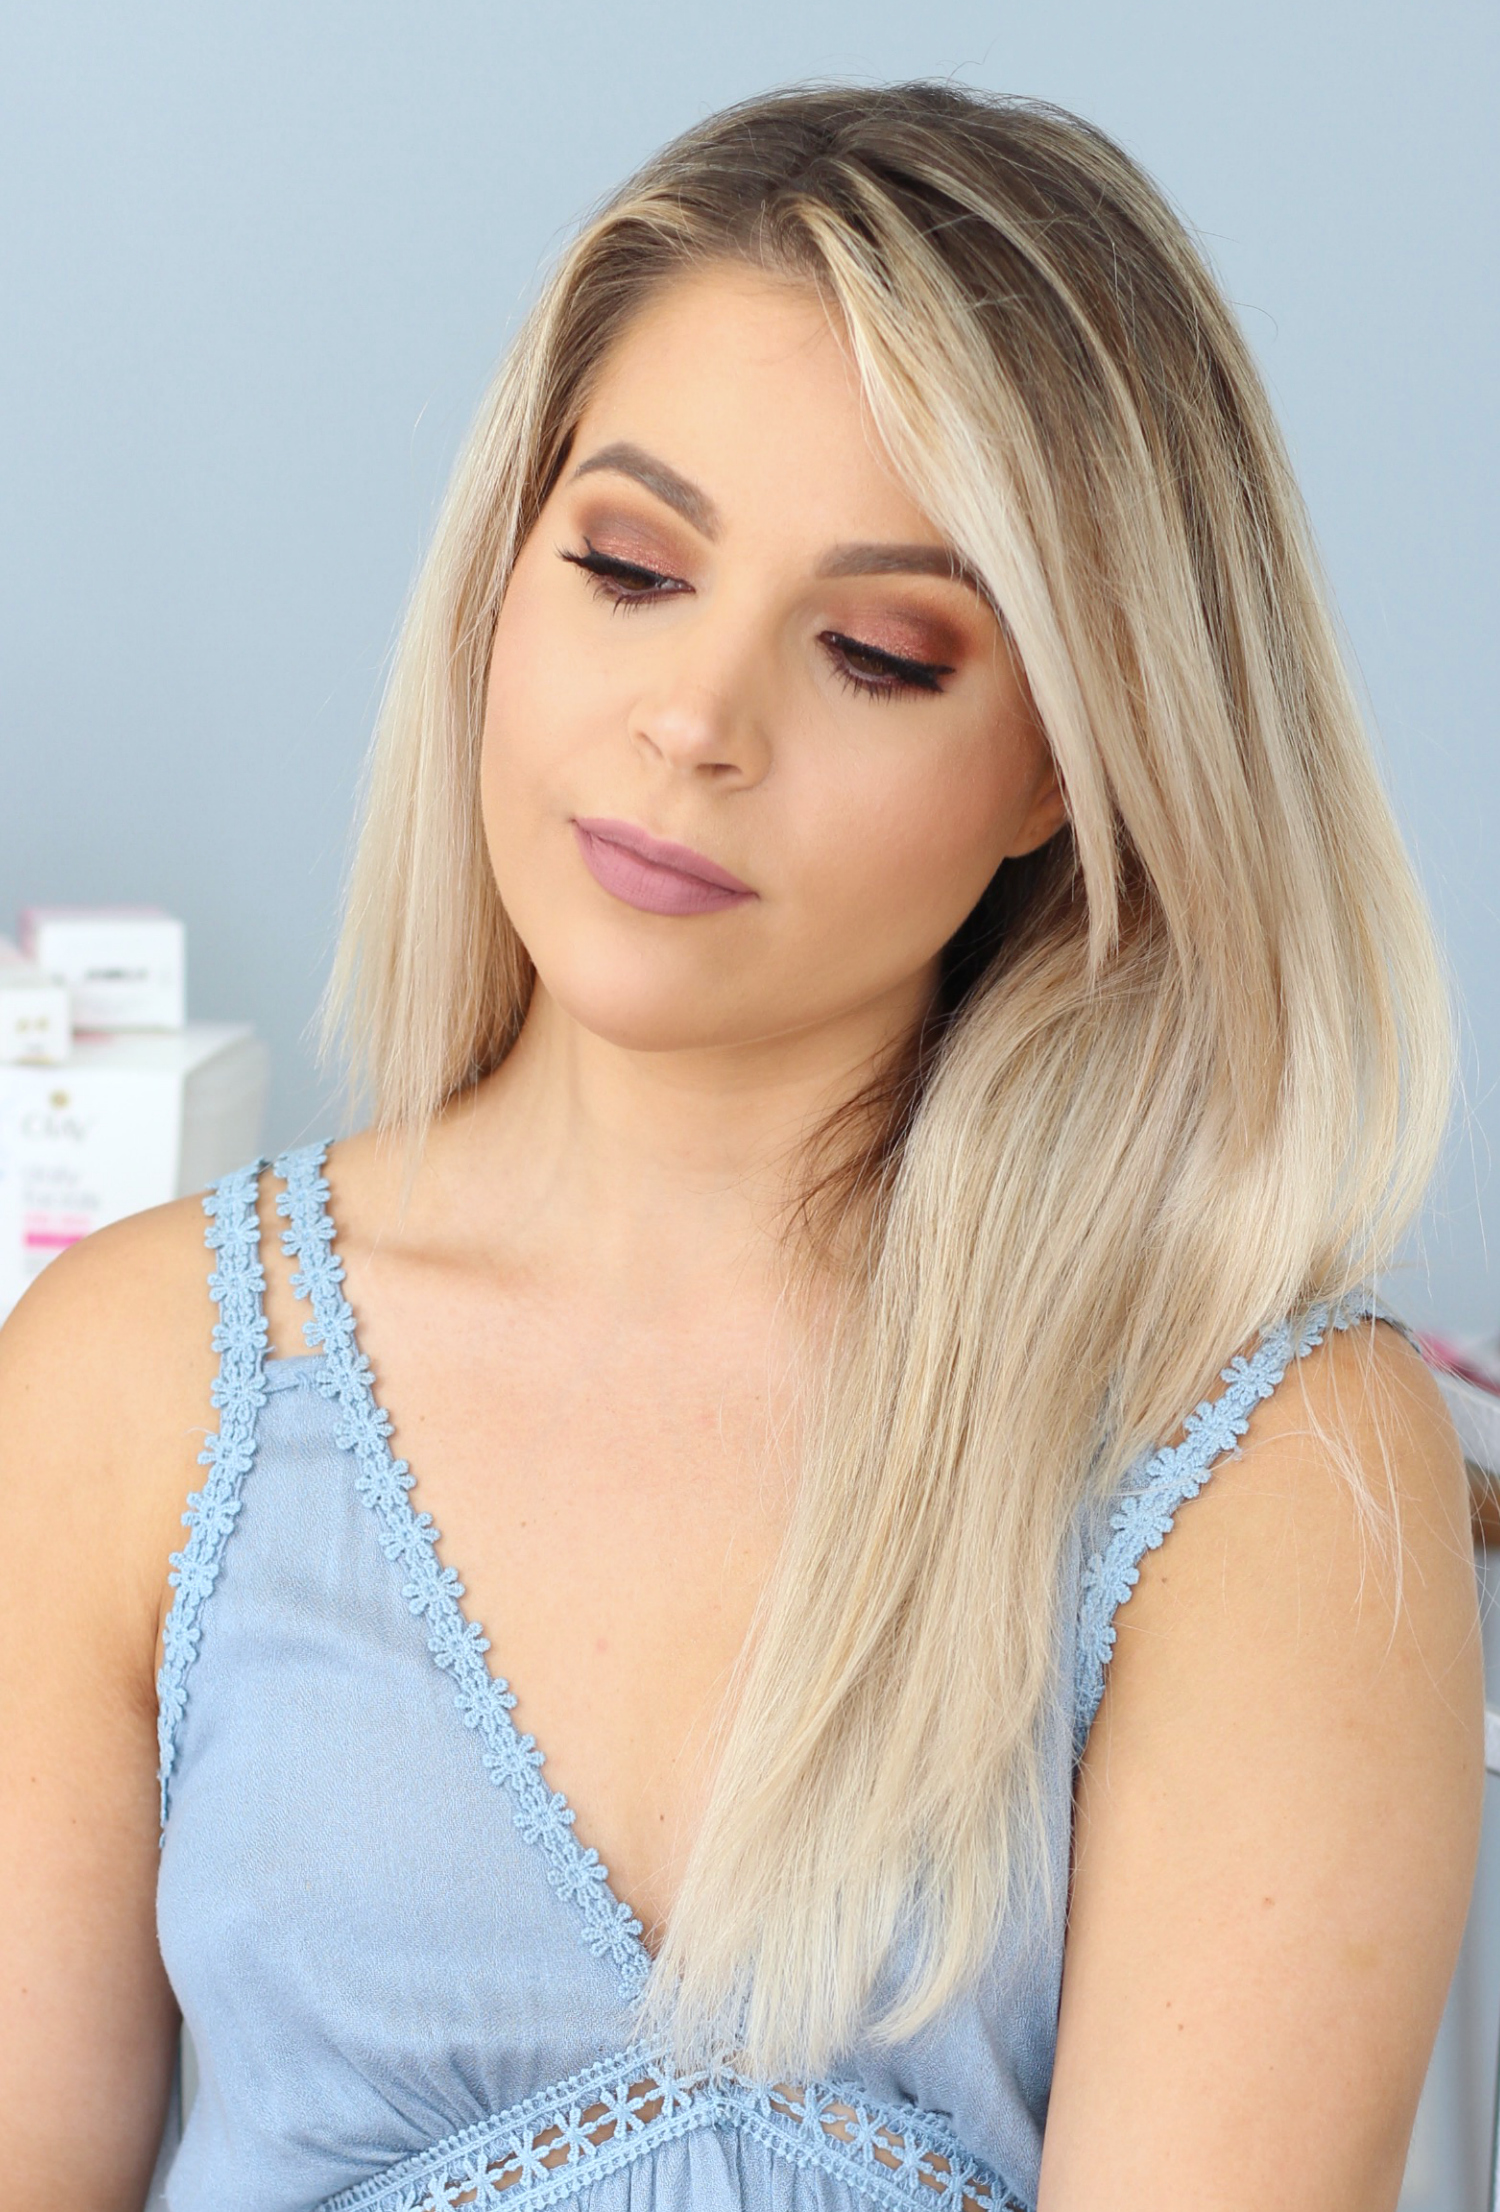 Urban Decay Naked Heat Review and Tutorial for Brown Eyes   Shimmery Smokey Eye with Warm Tones   Dose of Colors Stone on Medium Skin